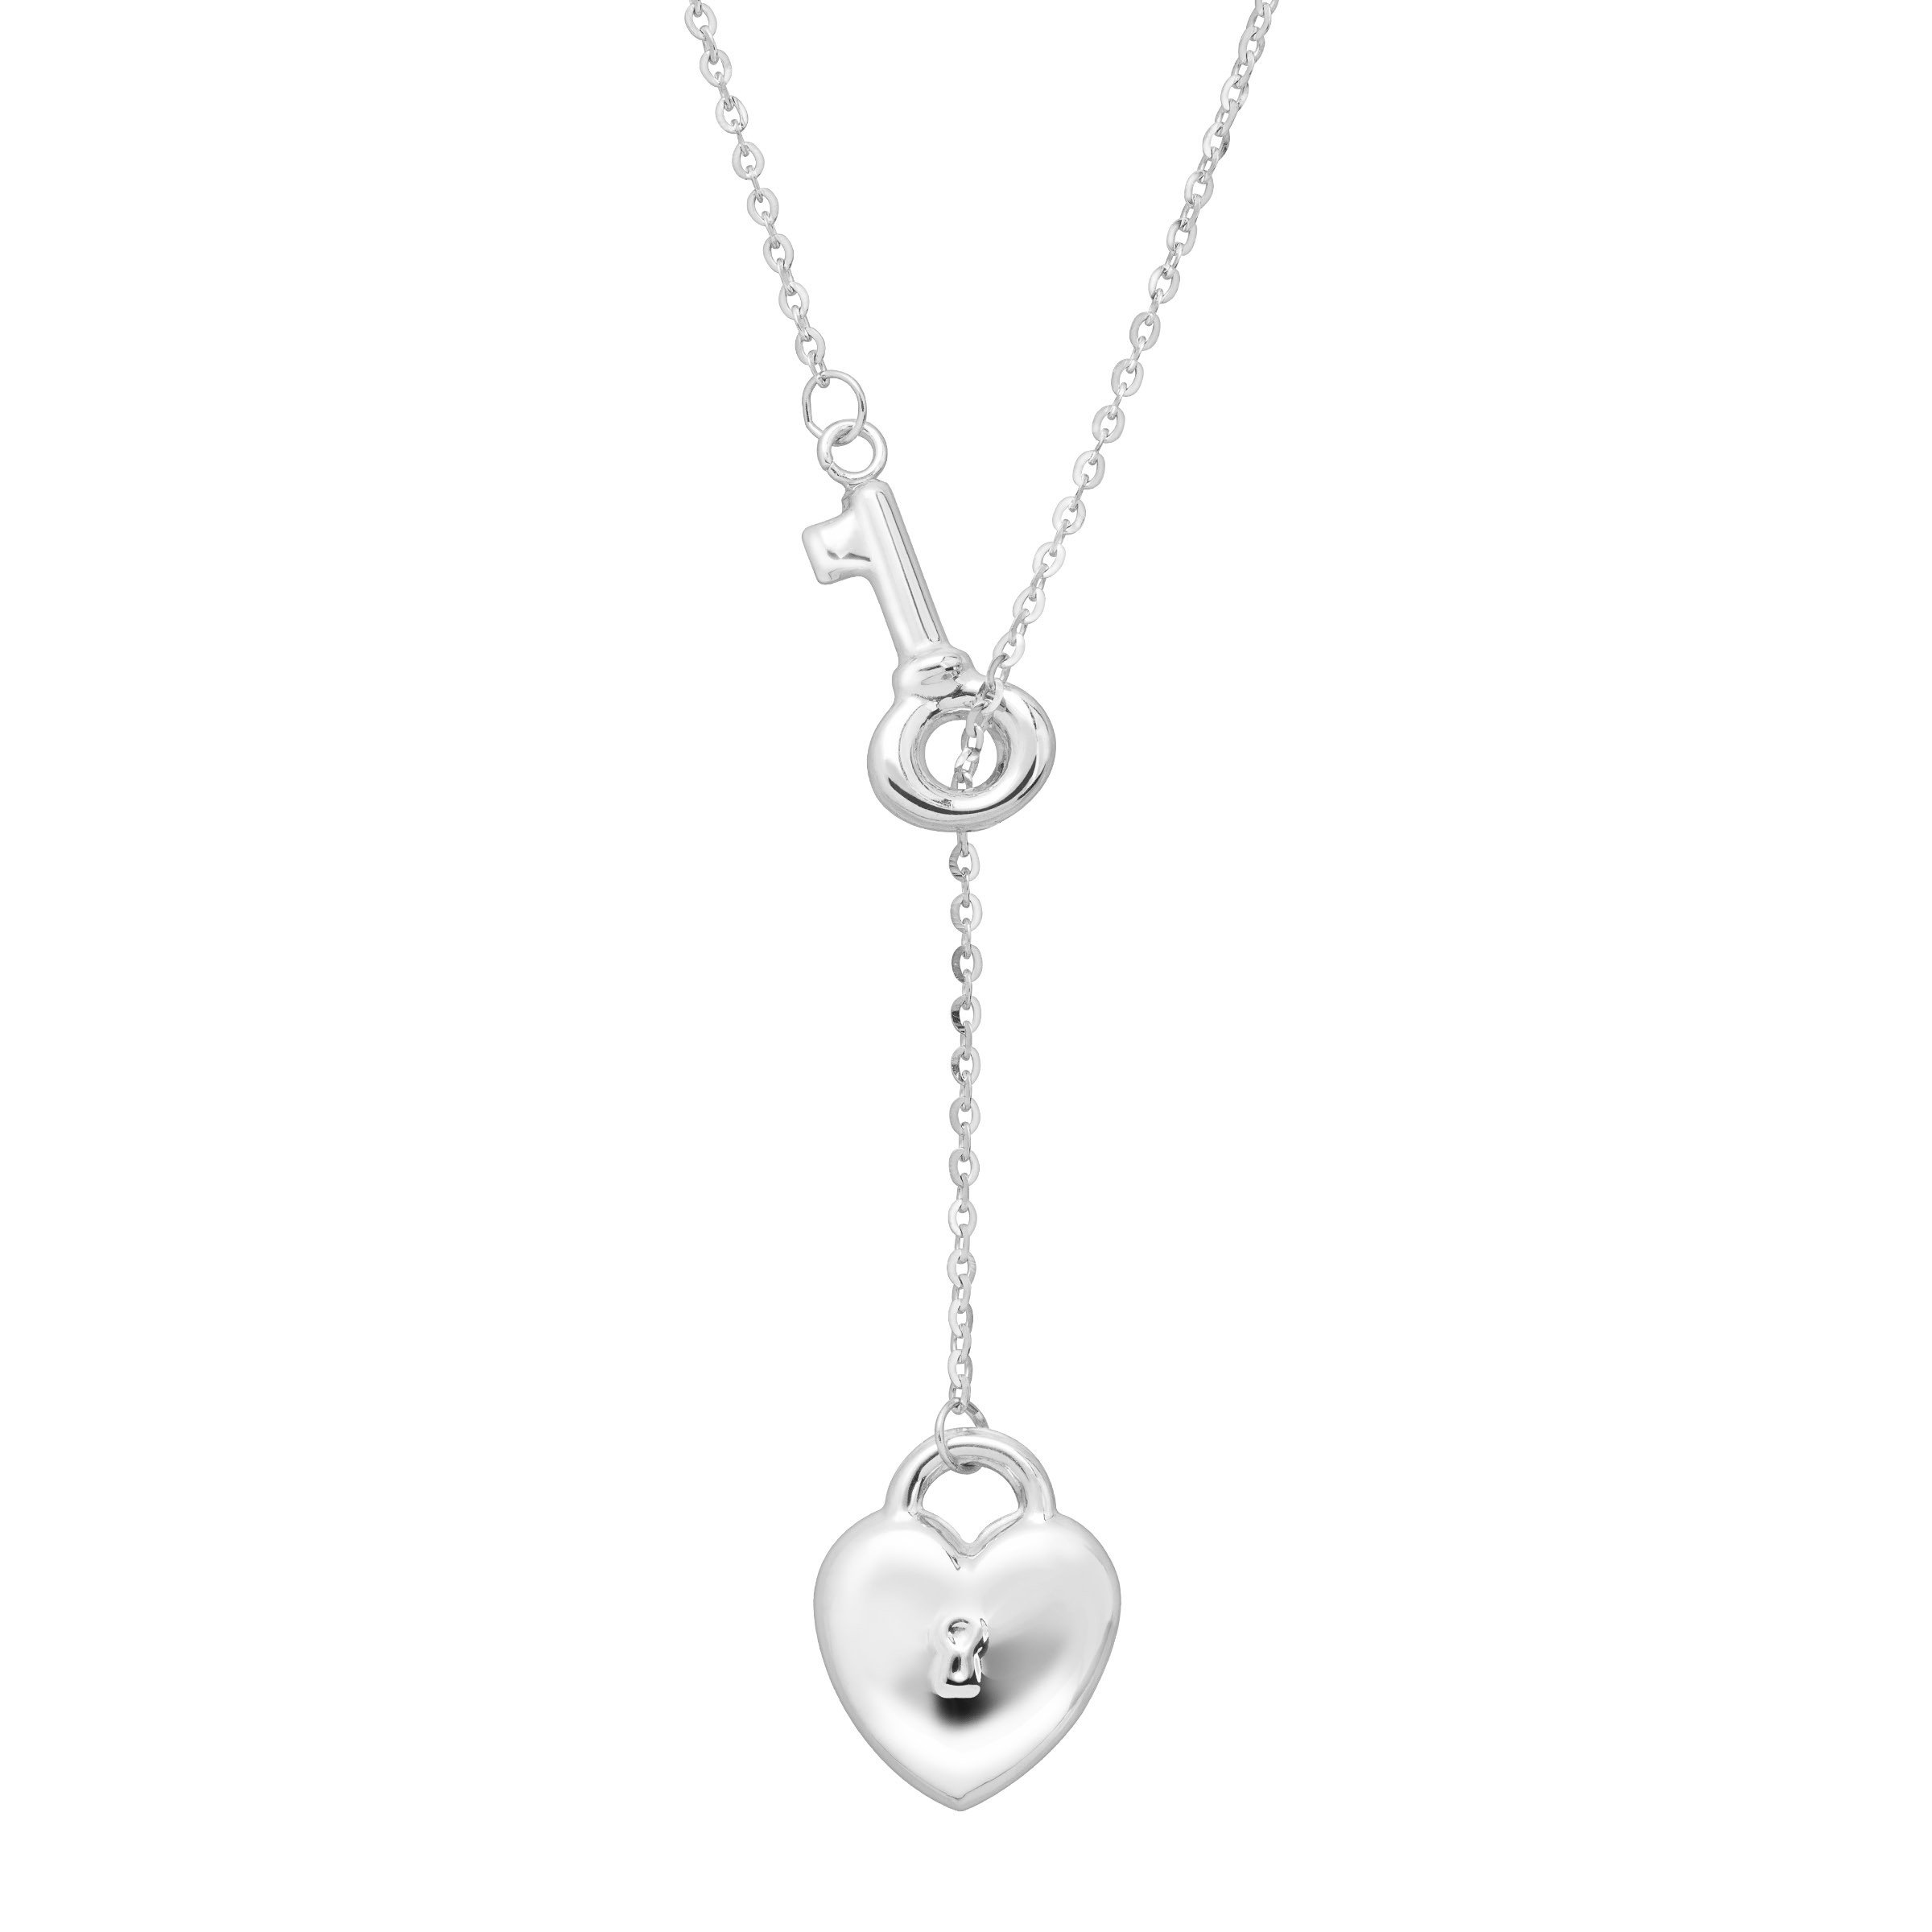 Just Gold Heart Lock & Key Lariat Necklace in 14K White Gold